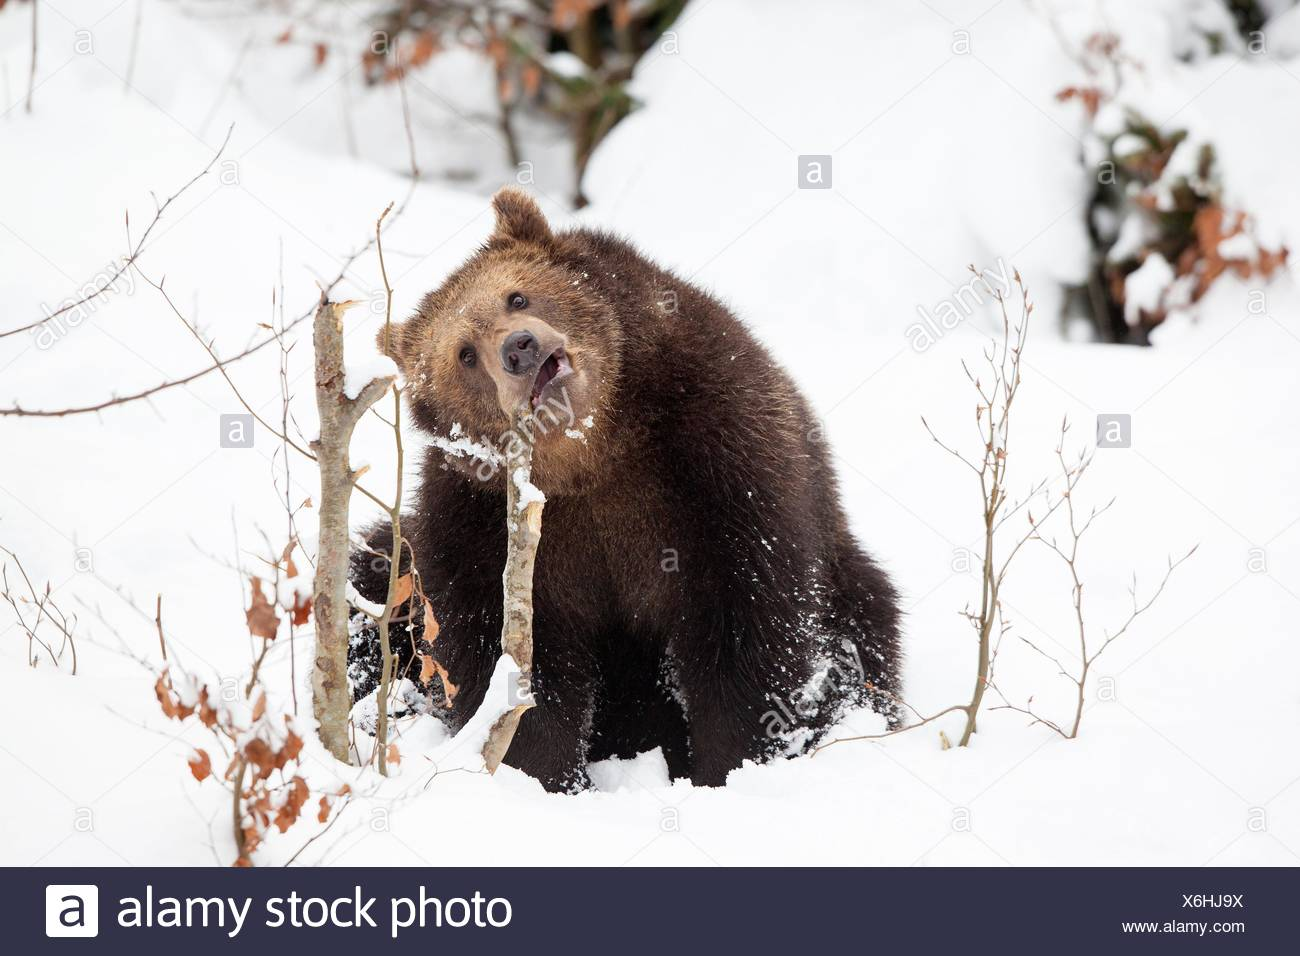 Young Brown bear (Ursus arctos) in the snow, Bavarian Forest National Park, Germany. - Stock Image